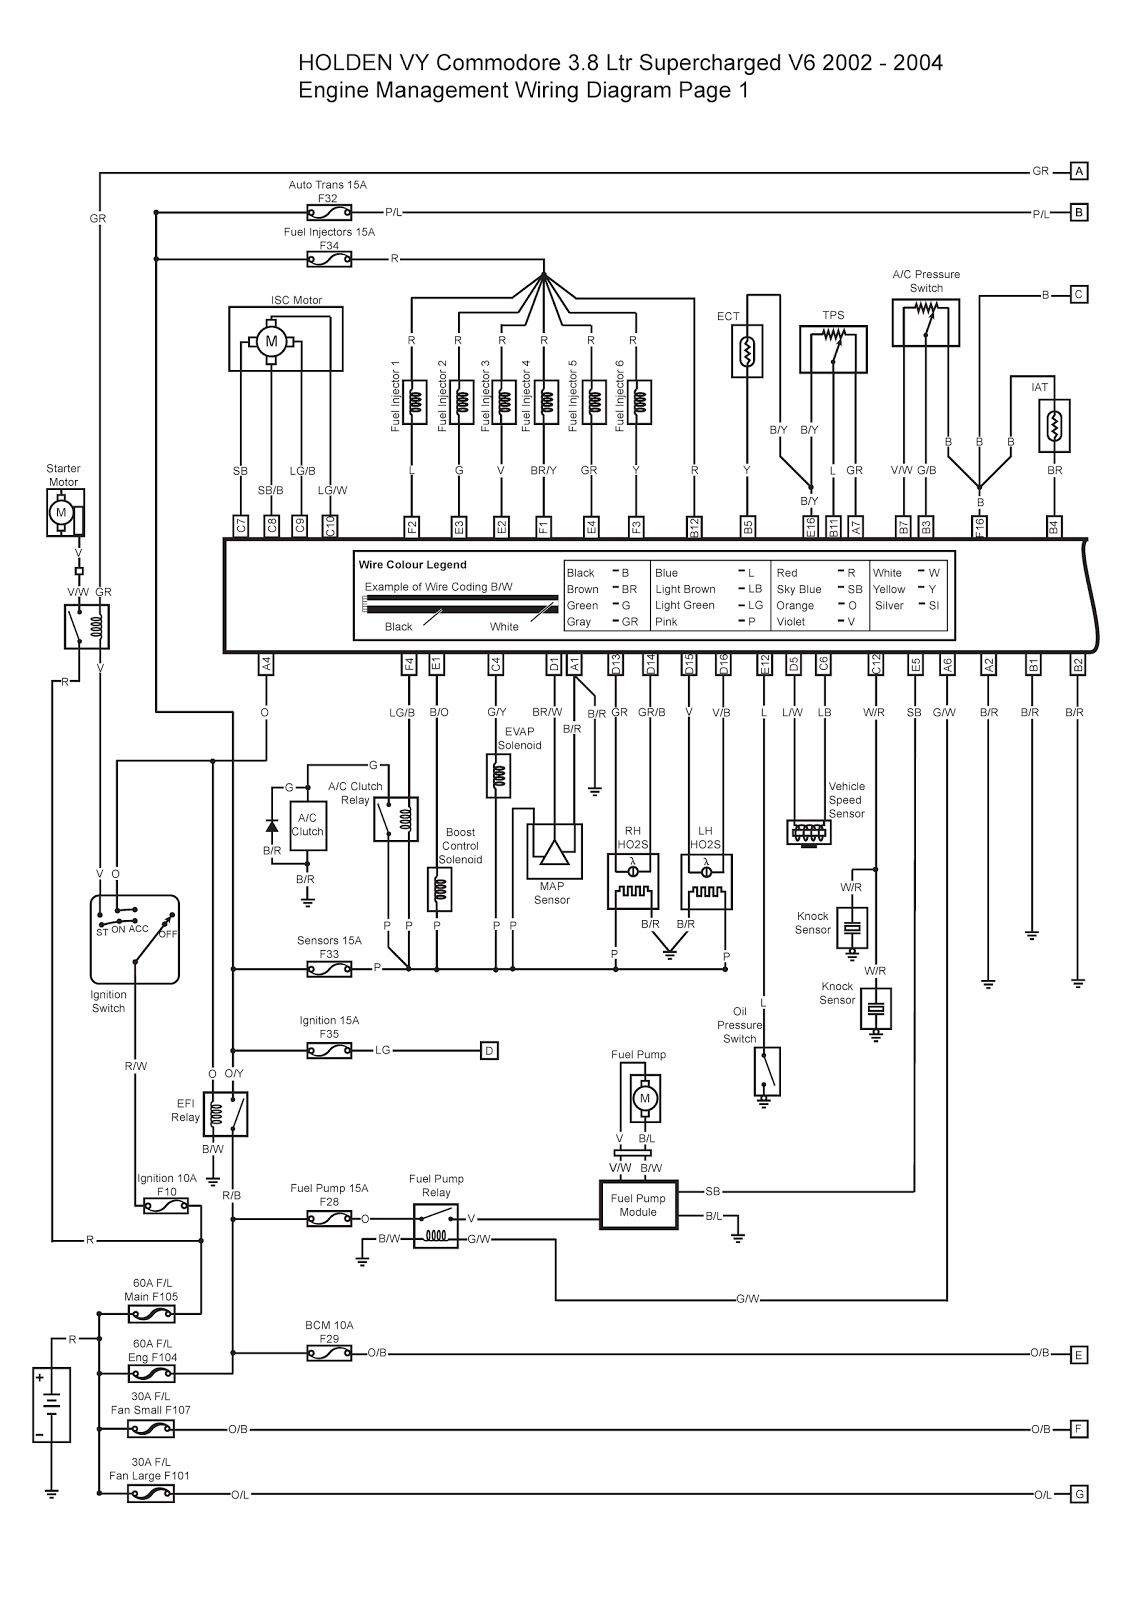 hight resolution of 2006 chevy cobalt ss supercharged engine chevrolet el camino holden ute hq holden wiring diagram holden